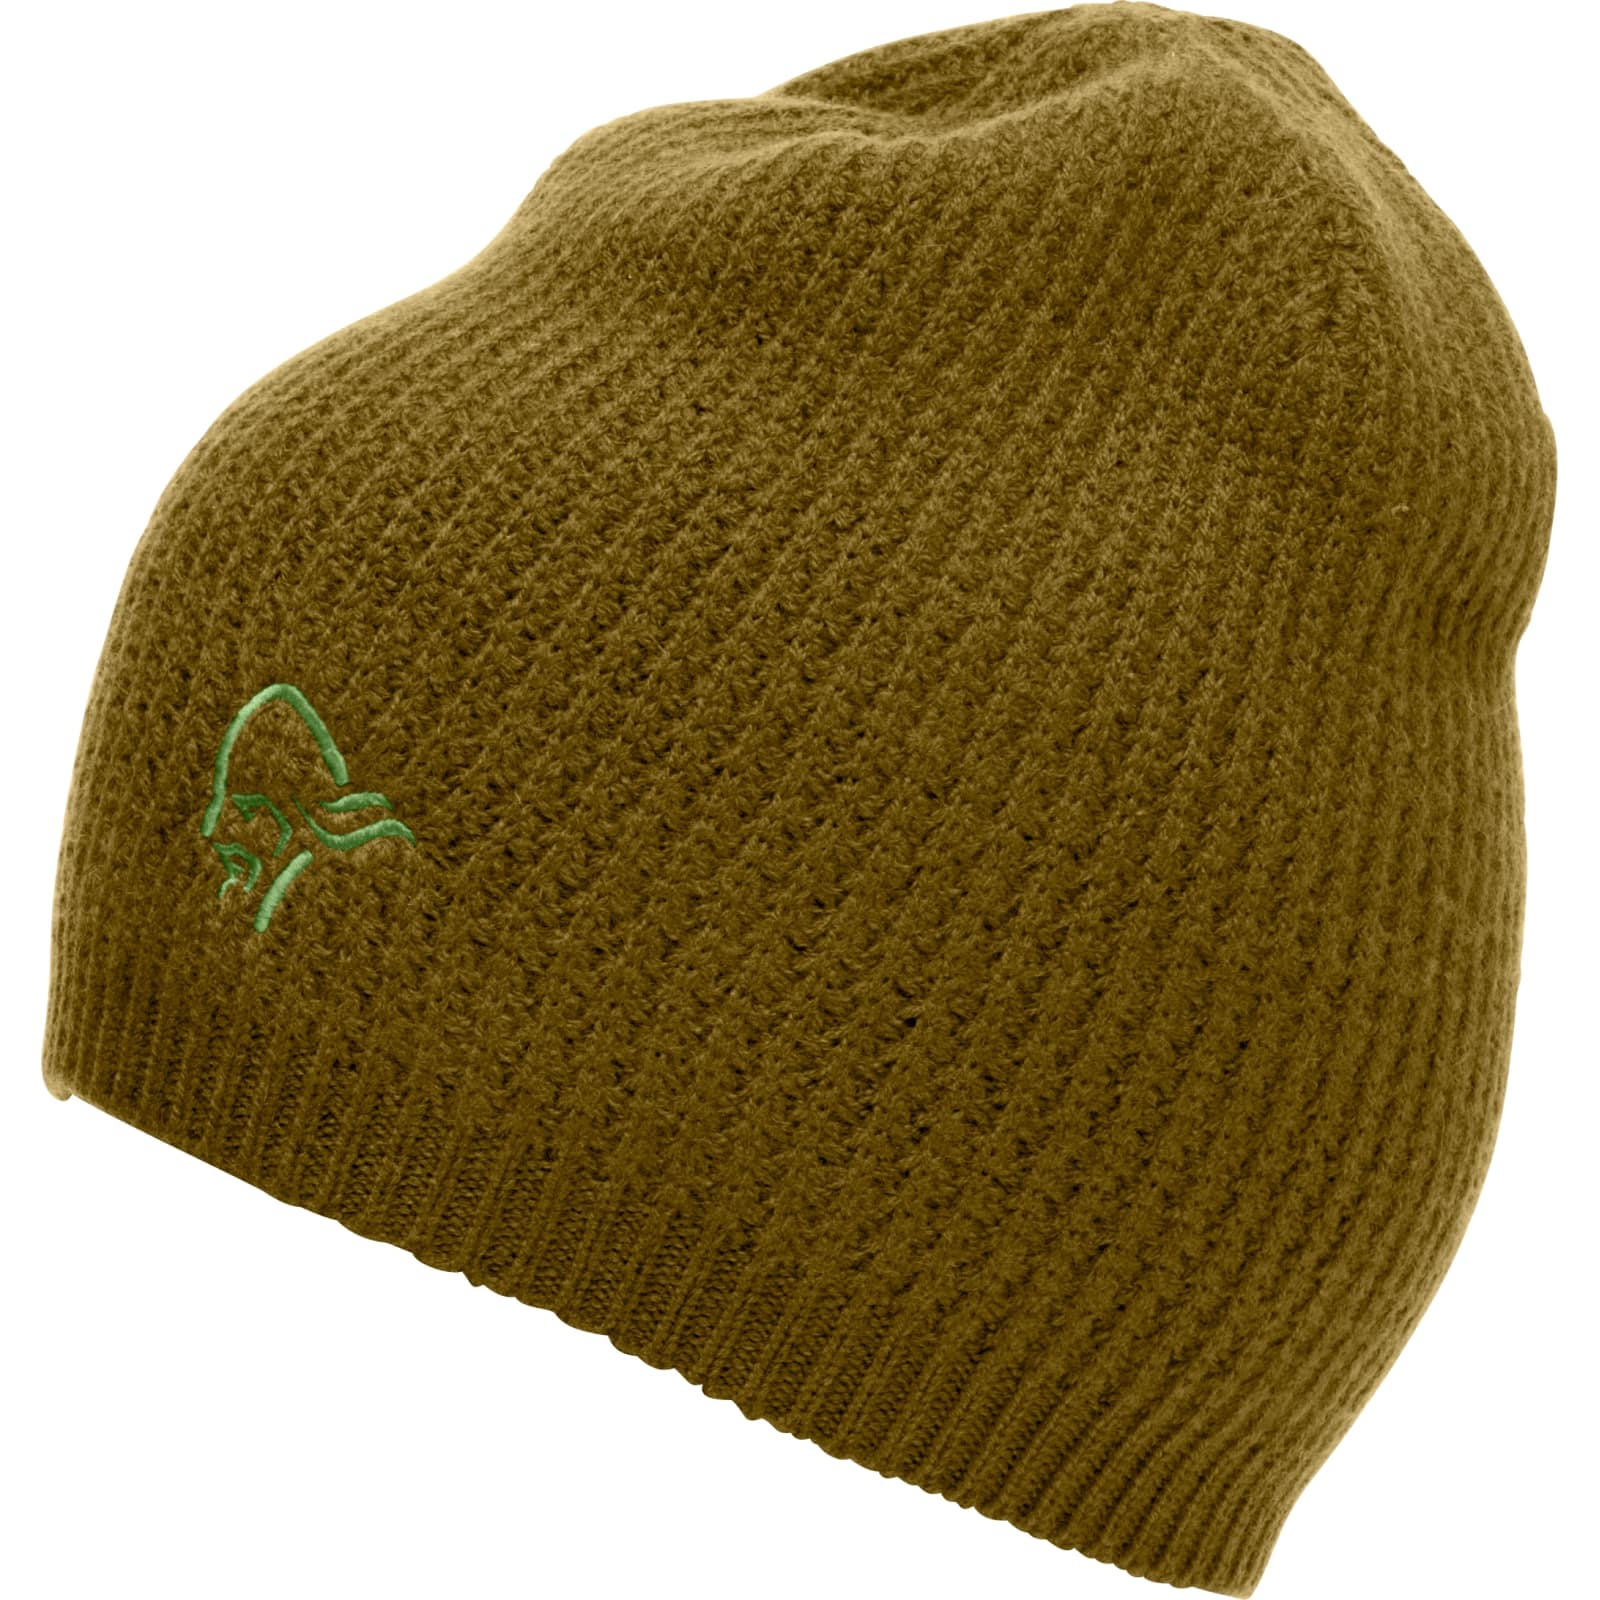 bd3d0afe579 Buy Norrøna  29 Rib Texture Beanie from Outnorth